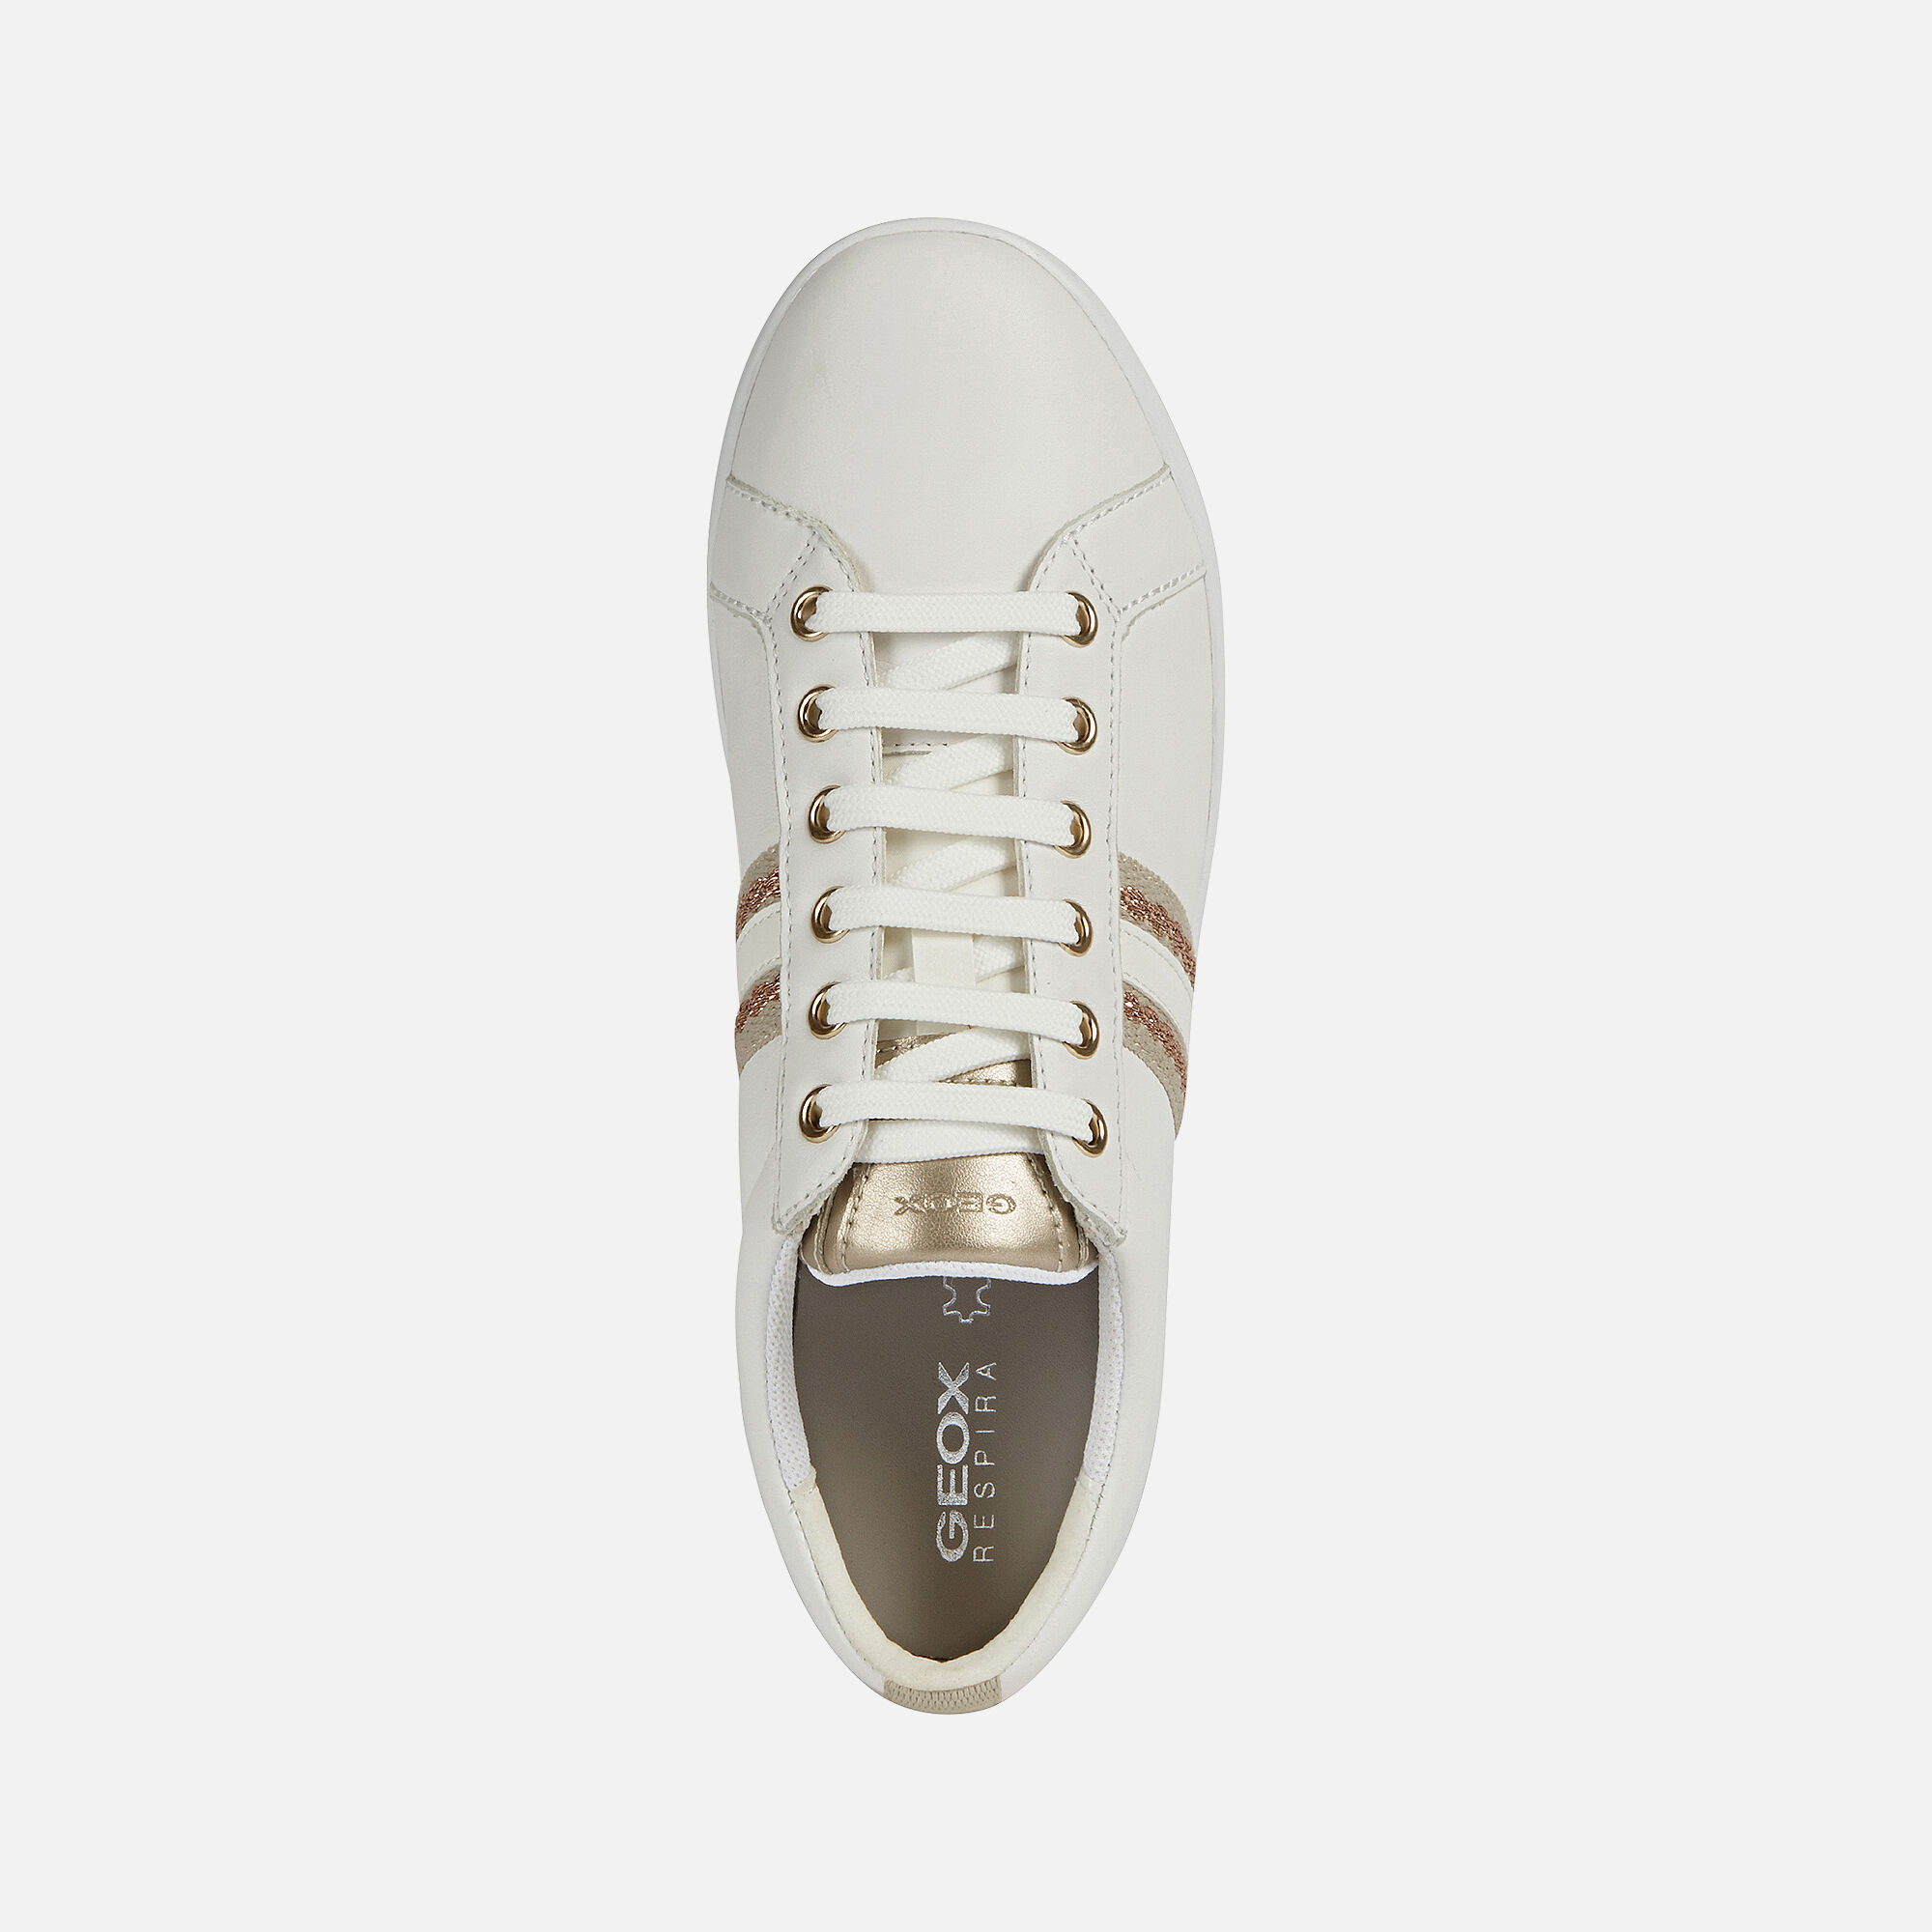 Geox Women's Jaysen Leather Lace Up